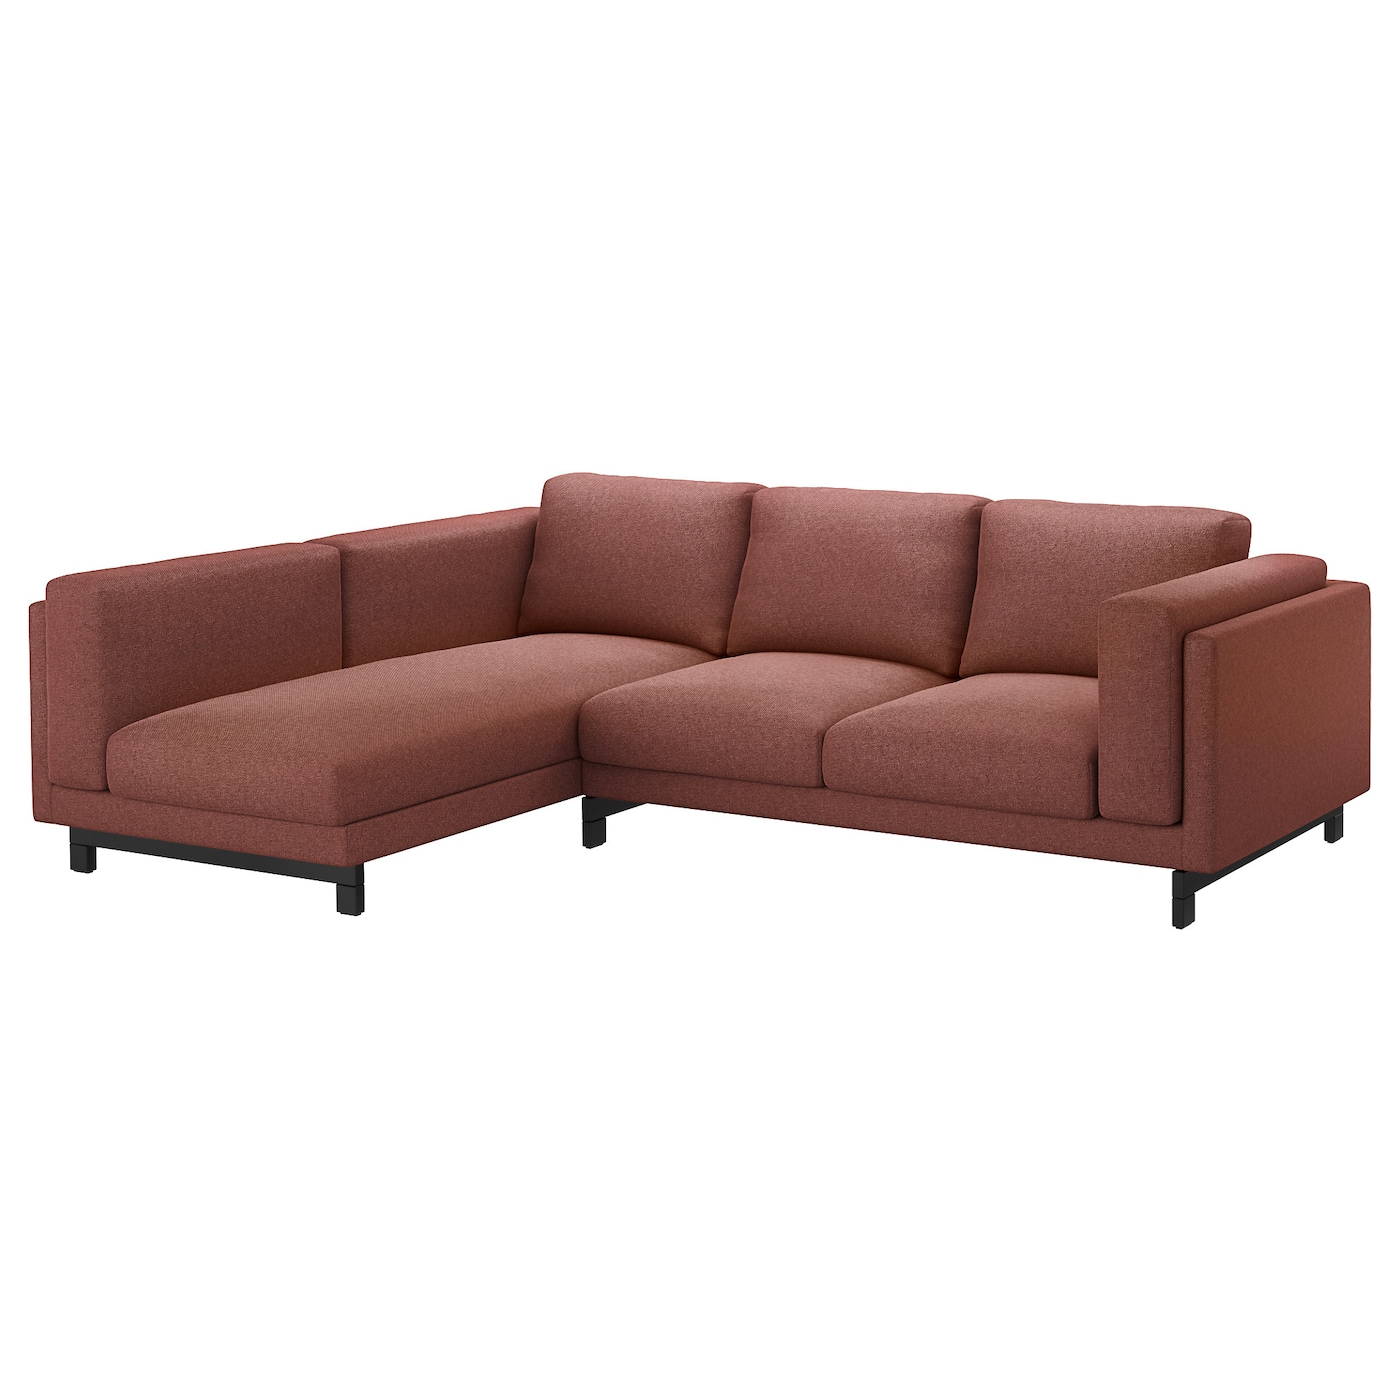 Nockeby two seat sofa w chaise longue left tallmyra rust for Chaise longue sofa